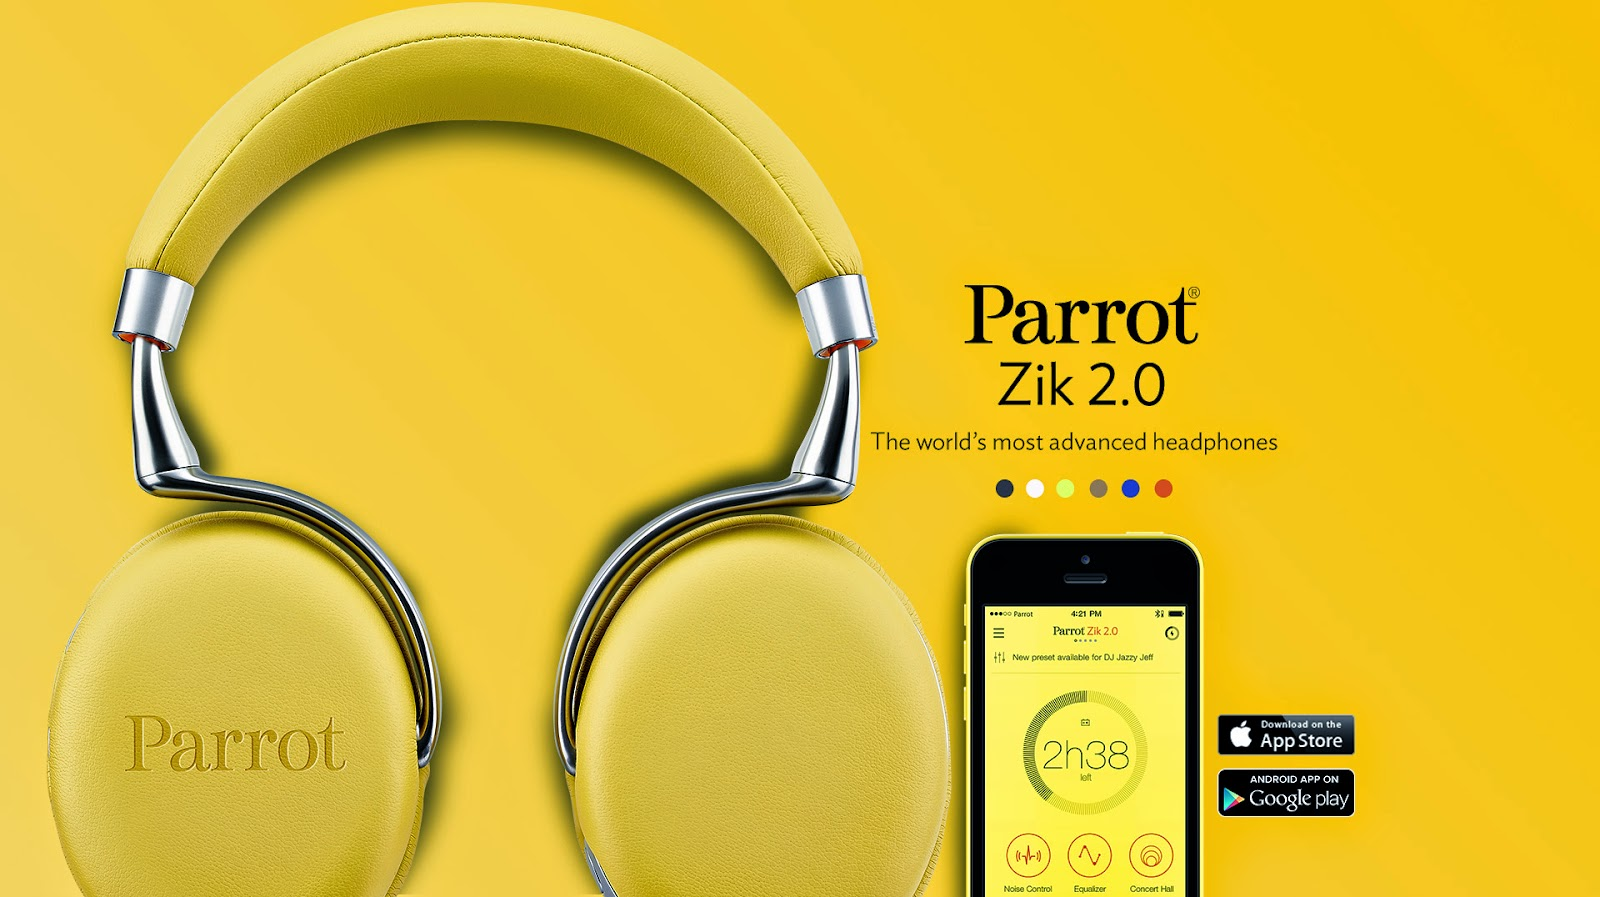 parrot zik 2 0 the world 39 s most advanced headphones modernistic design. Black Bedroom Furniture Sets. Home Design Ideas